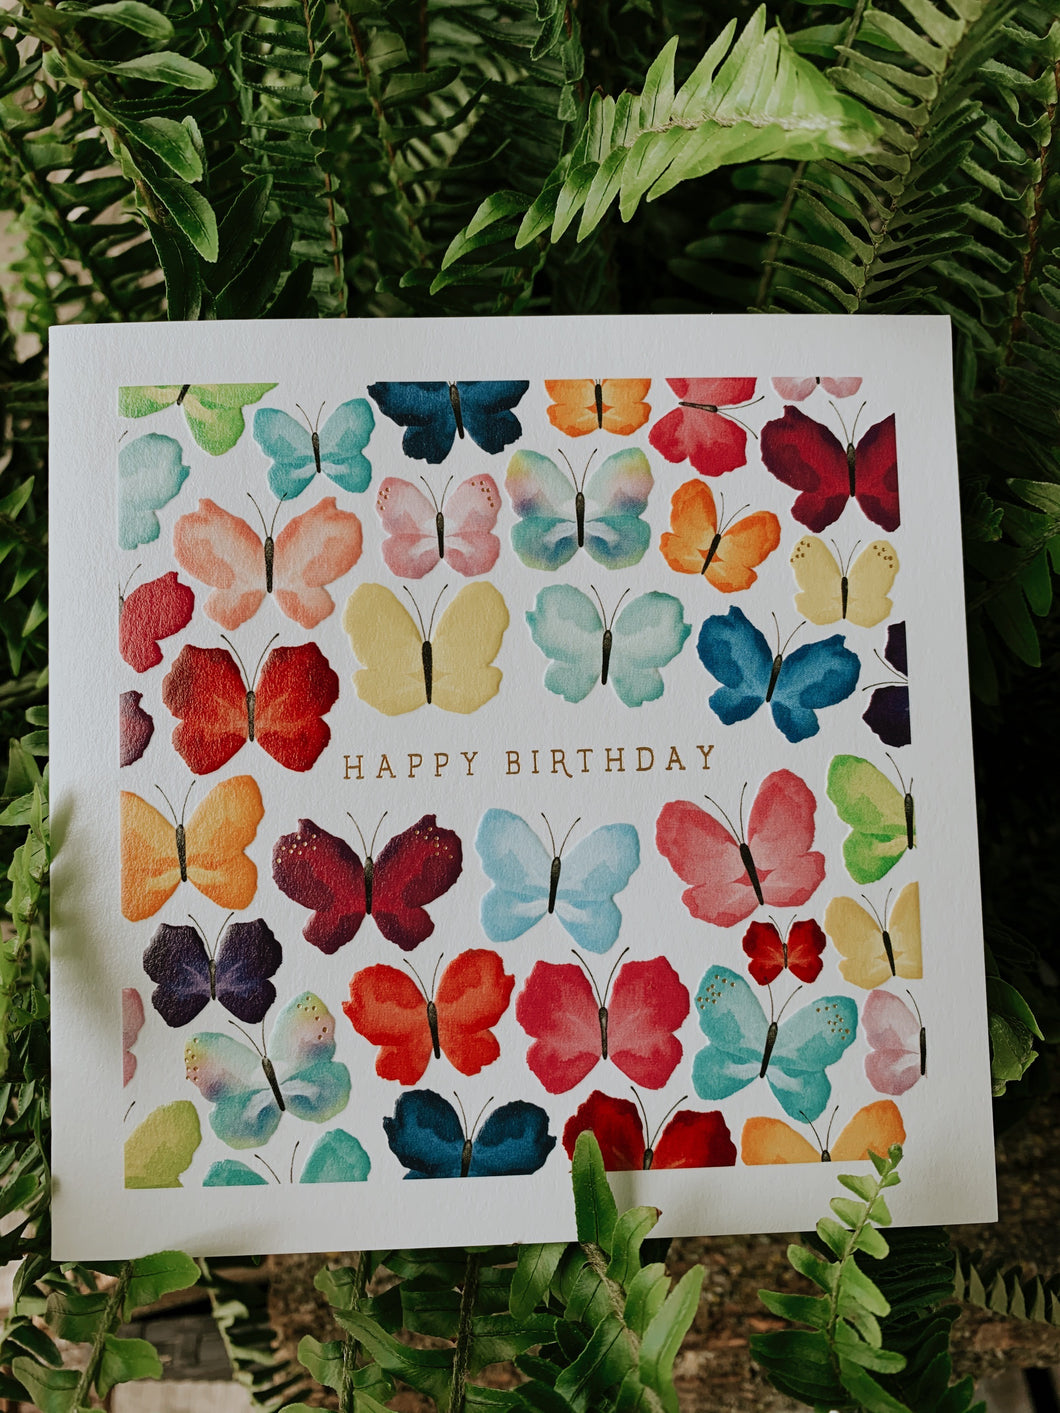 Happy Birthday Card- Painted Butterflies